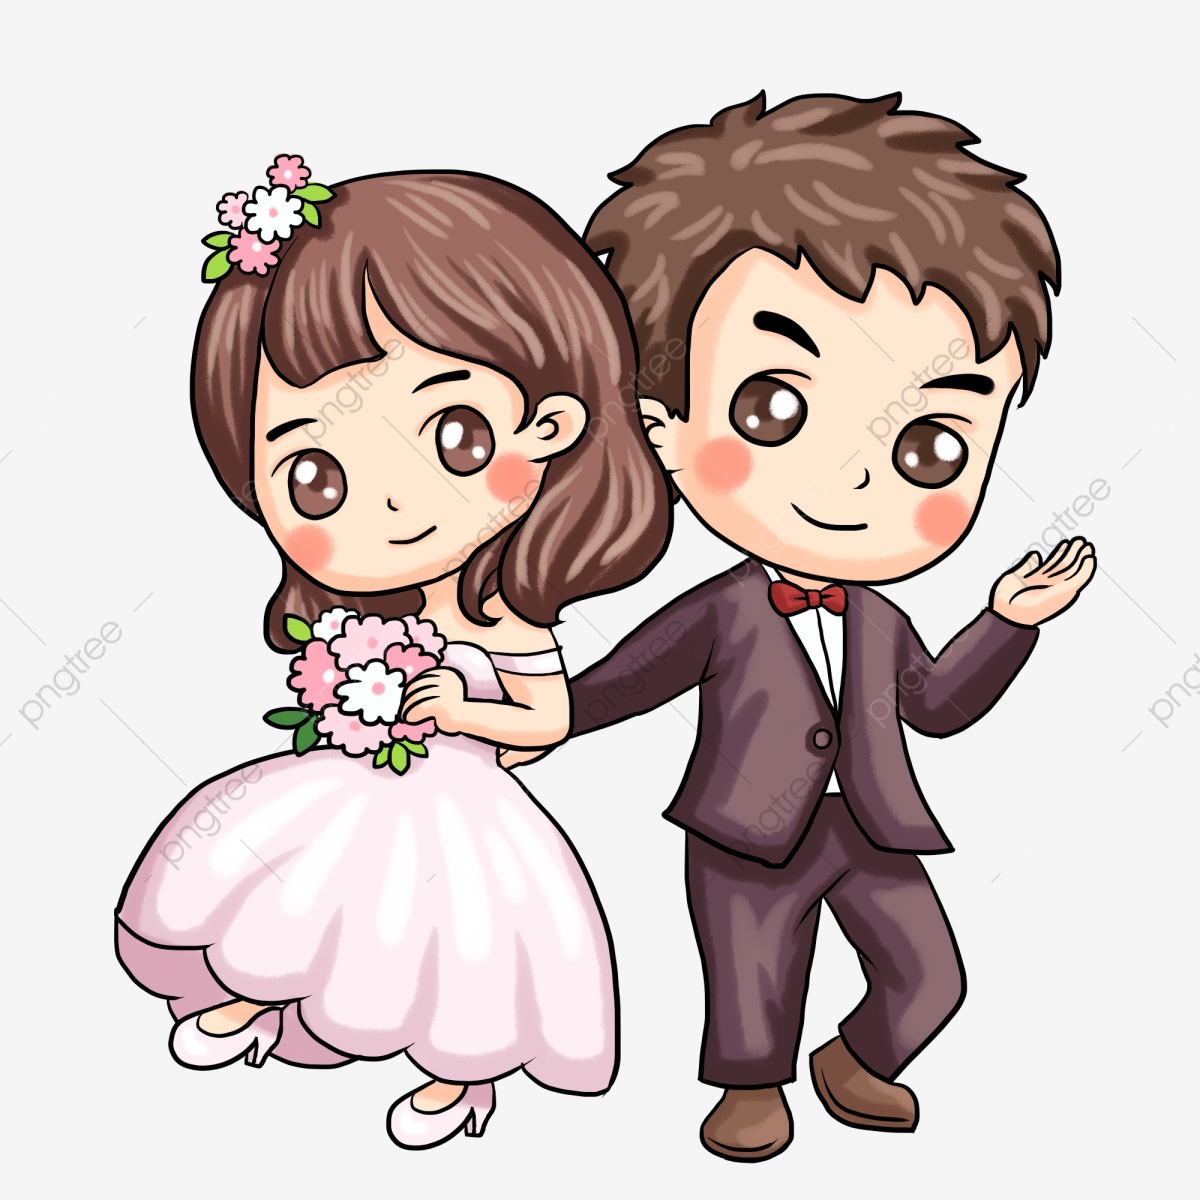 Painted Western Style Wedding Couple Illustration Married Couple Cartoon Png Transparent Clipart Image And Psd File For Free Download